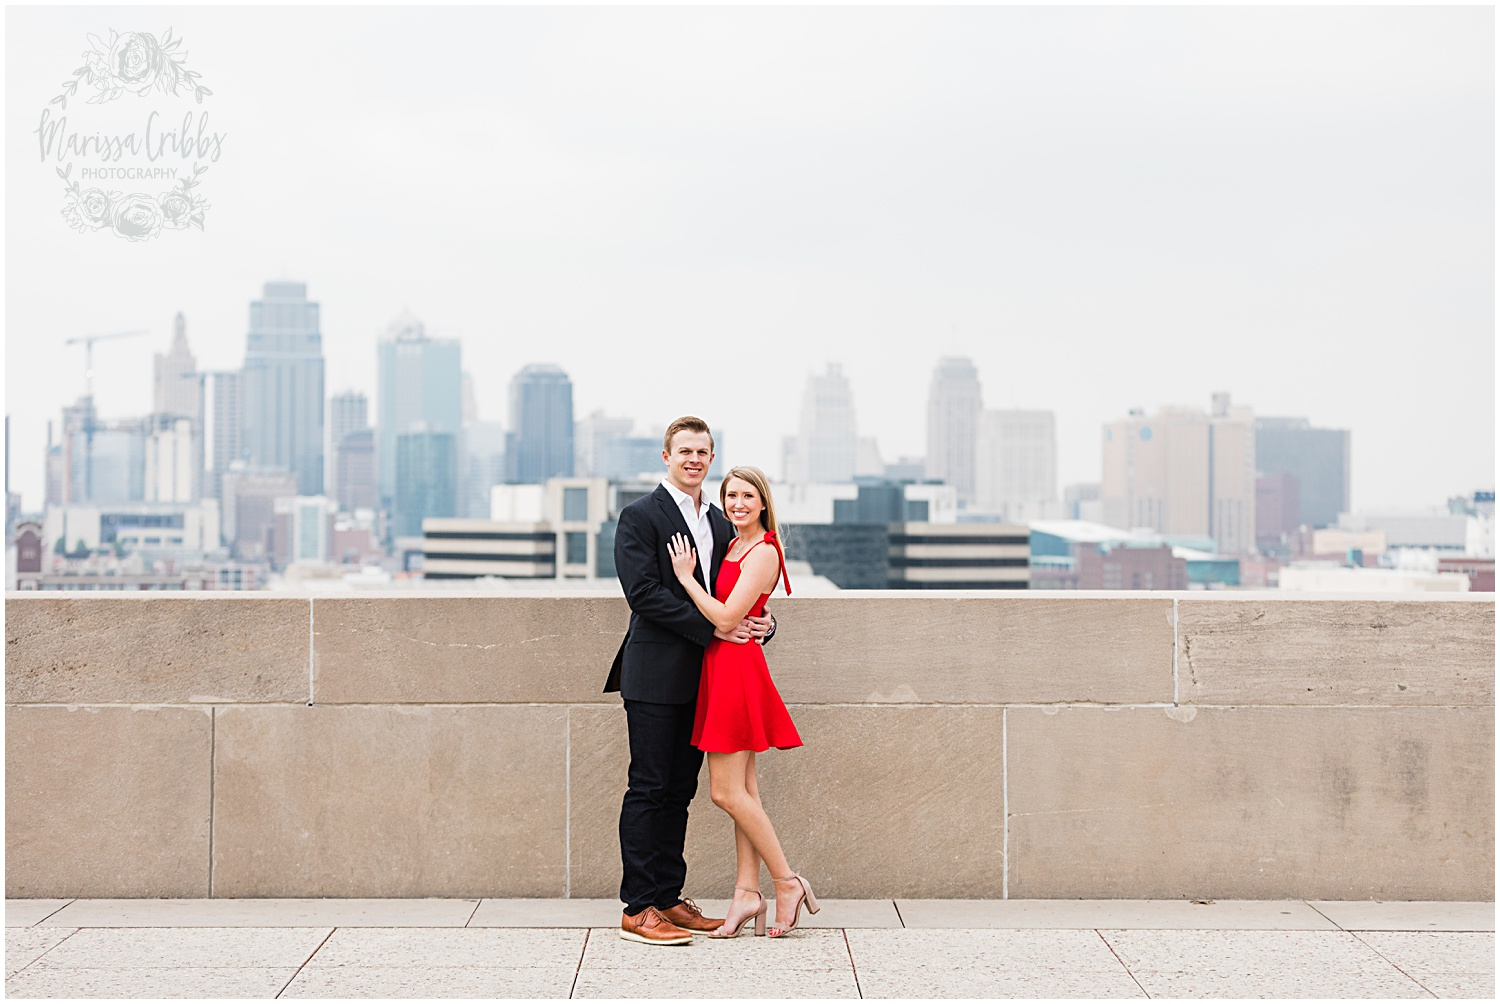 MADDY & KYLE ENGAGEMENT | MARISSA CRIBBS PHOTOGRAPHY_7616.jpg